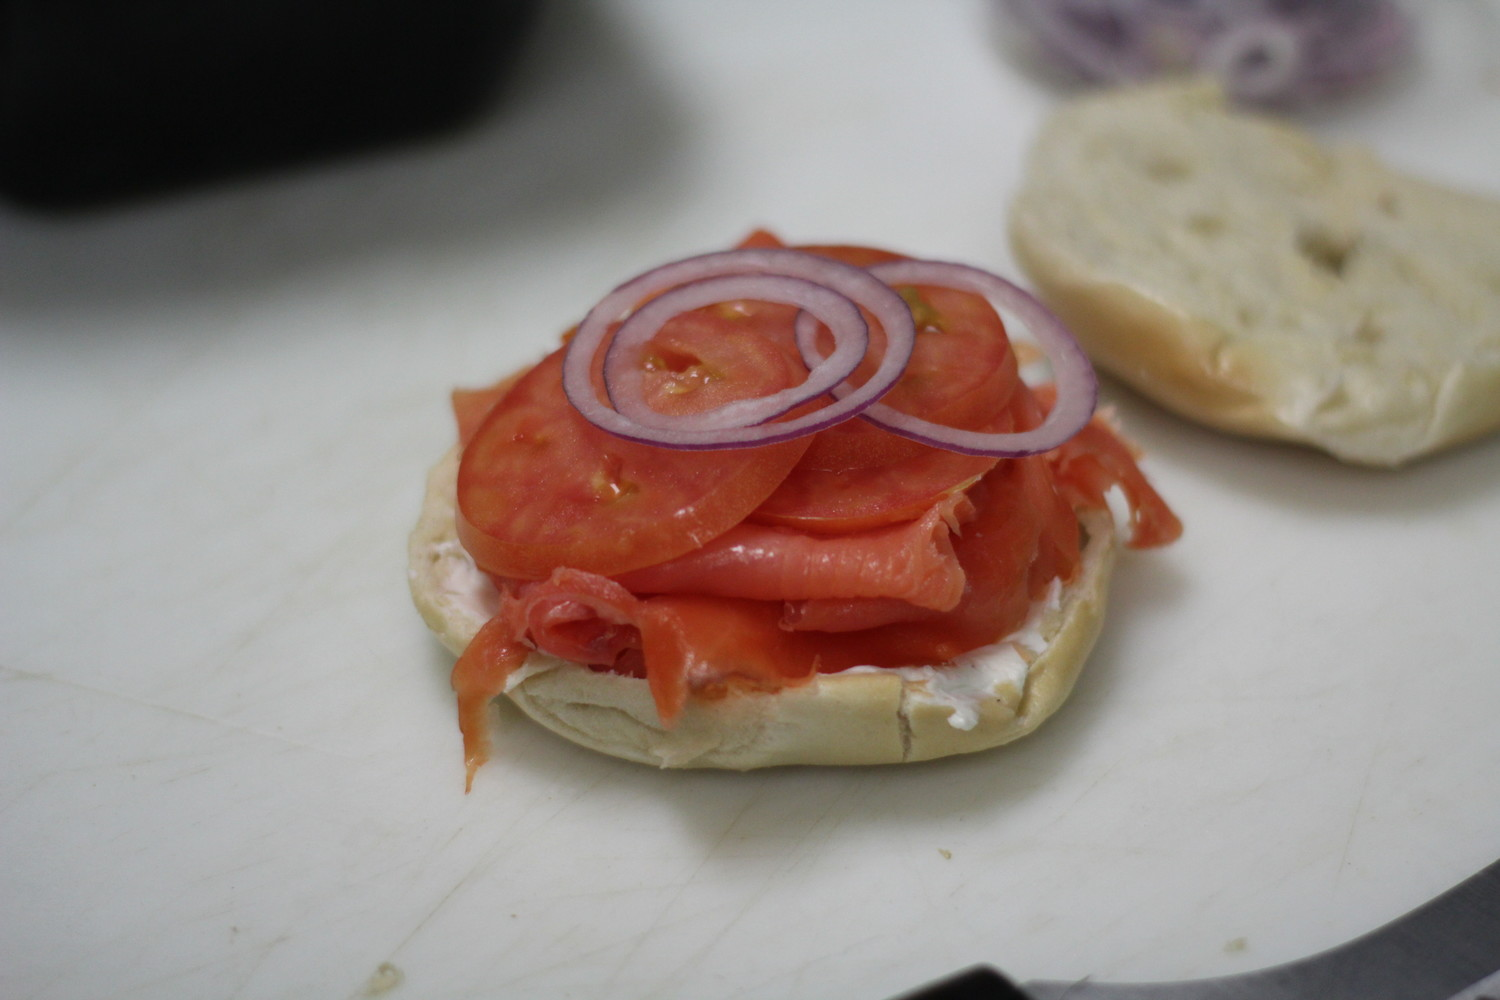 This bagel with lox was $6.95 at Seaford Bagels. The store also ran a 25th anniversary promotion through April that offers bagels for 25 cents on Mondays and Tuesdays.